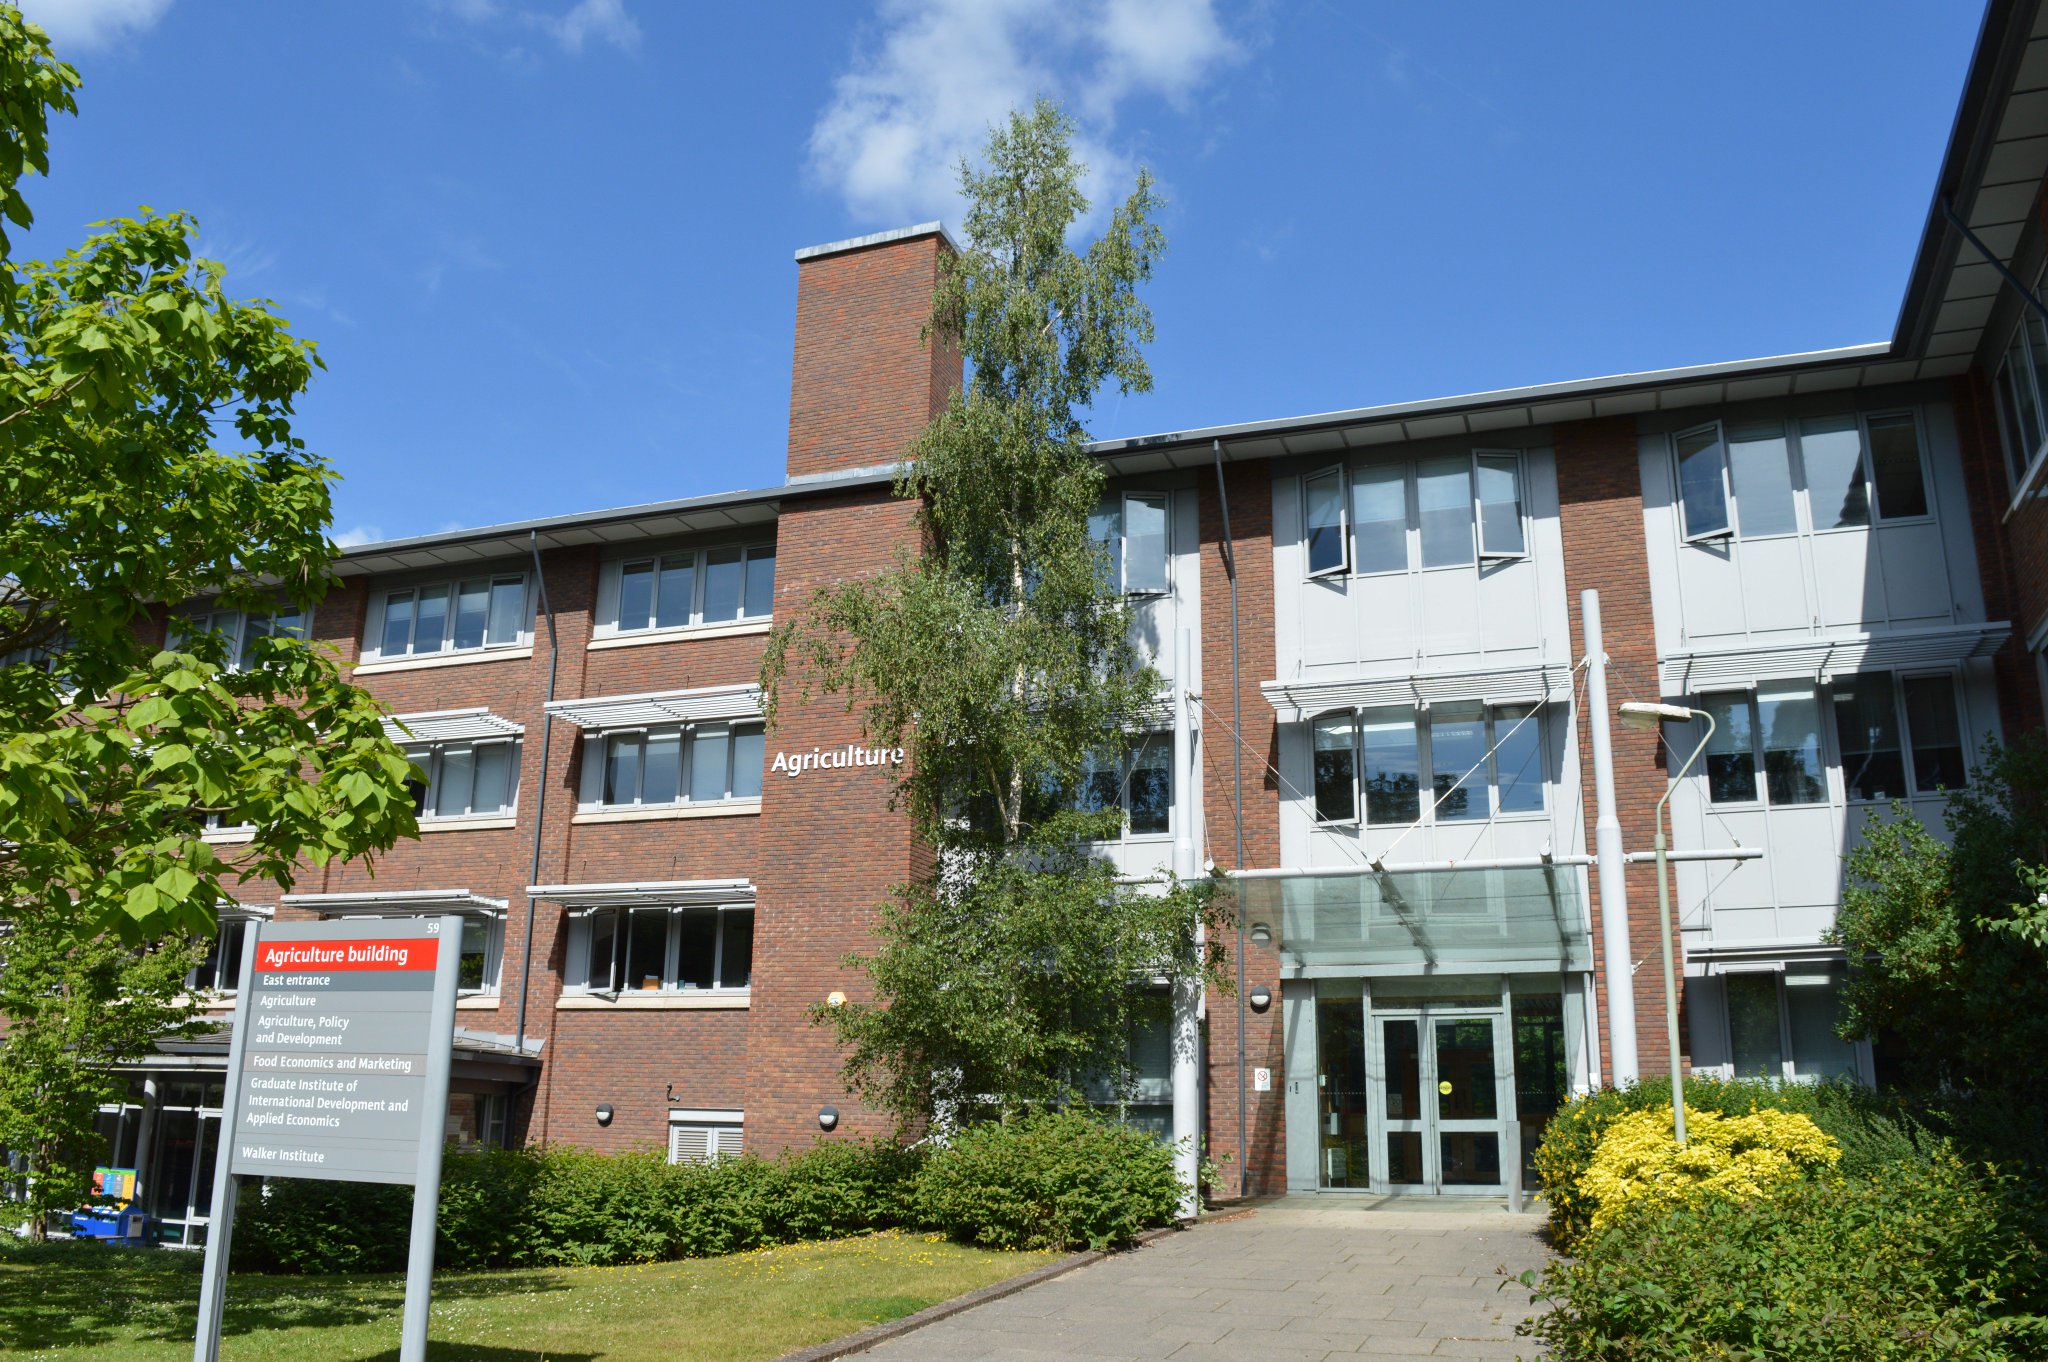 The School of Agriculture, Policy and Development at the University of Reading. The University of Reading is the most highly ranked UK institution for agriculture. It is in the top 1% worldwide.